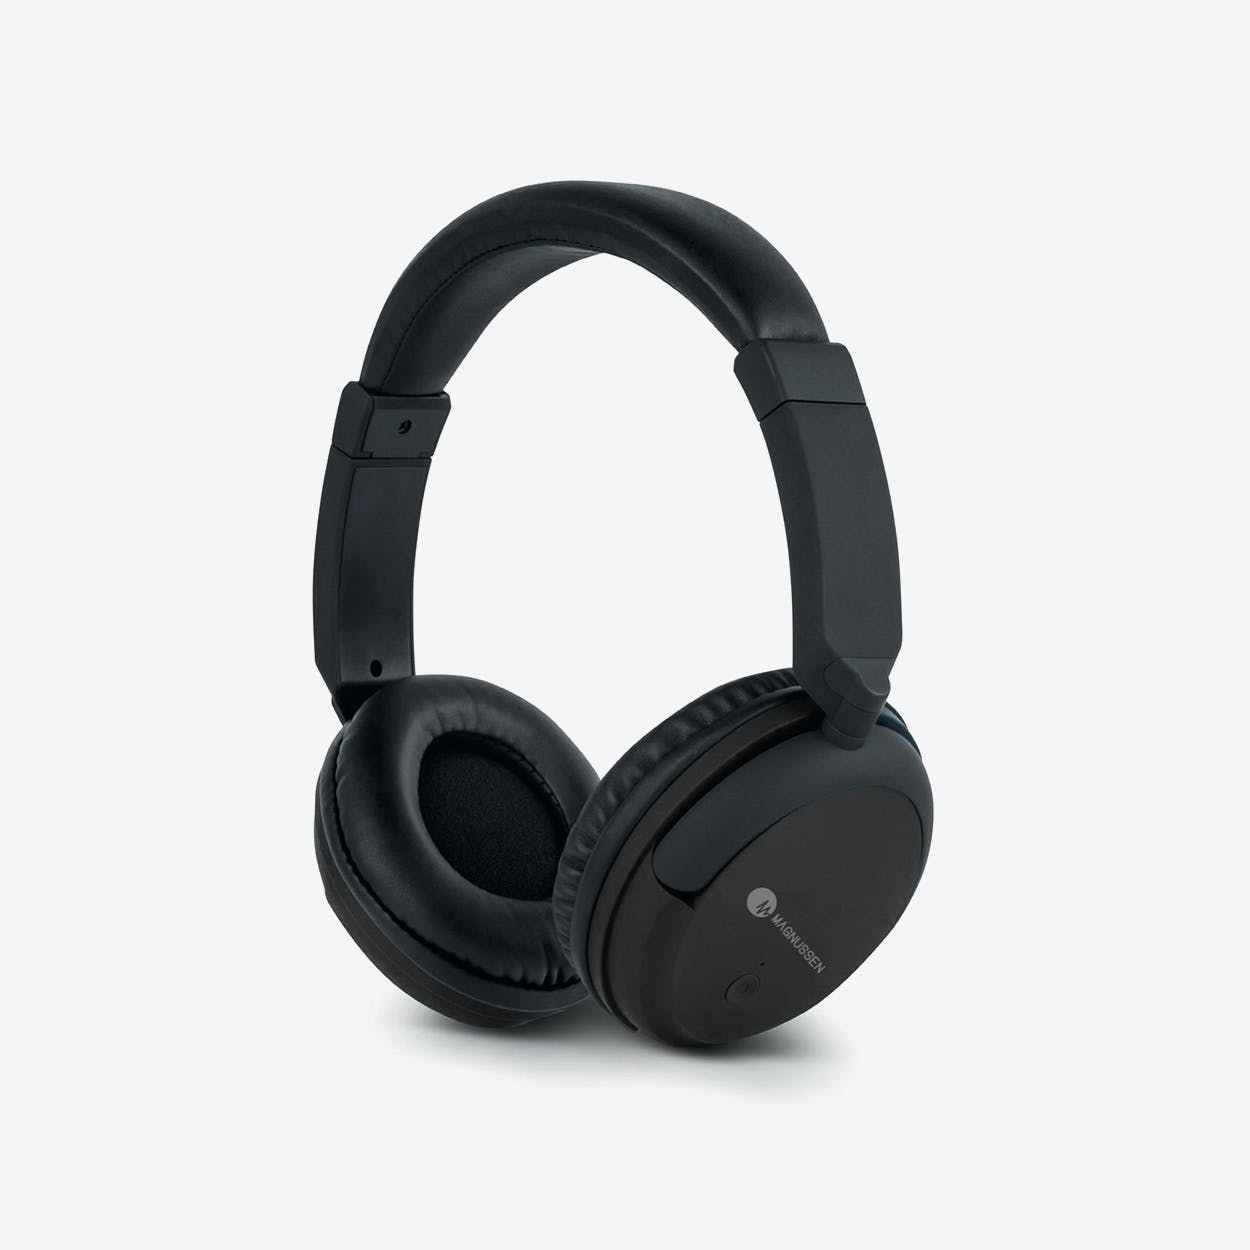 MAGNUSSEN H3 Headphones in Black